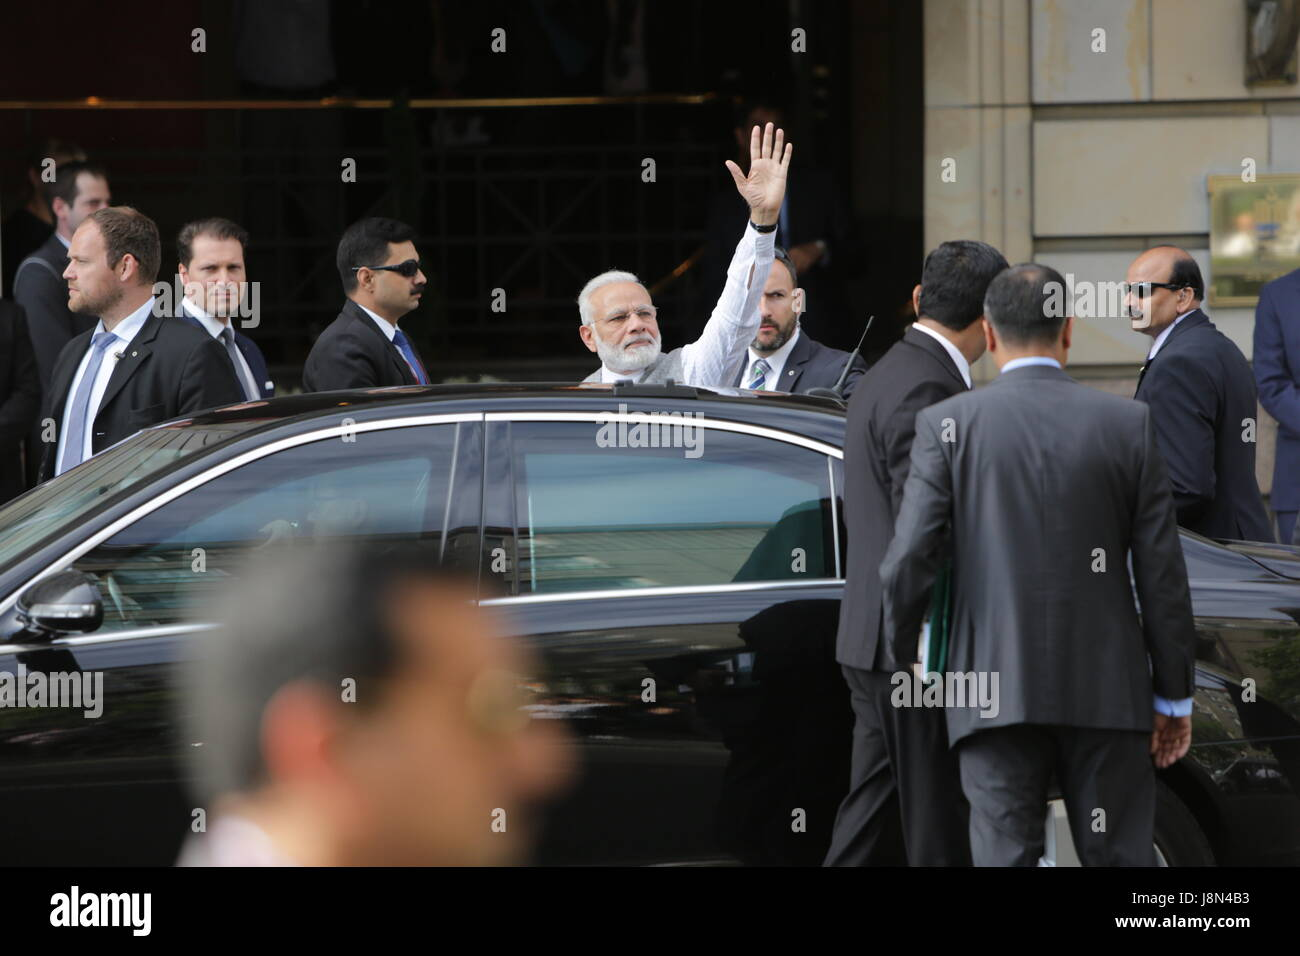 Narendra Modi waves at a group of supporters. The Prime Minister of India, Narendra Modi, has started his visit - Stock Image